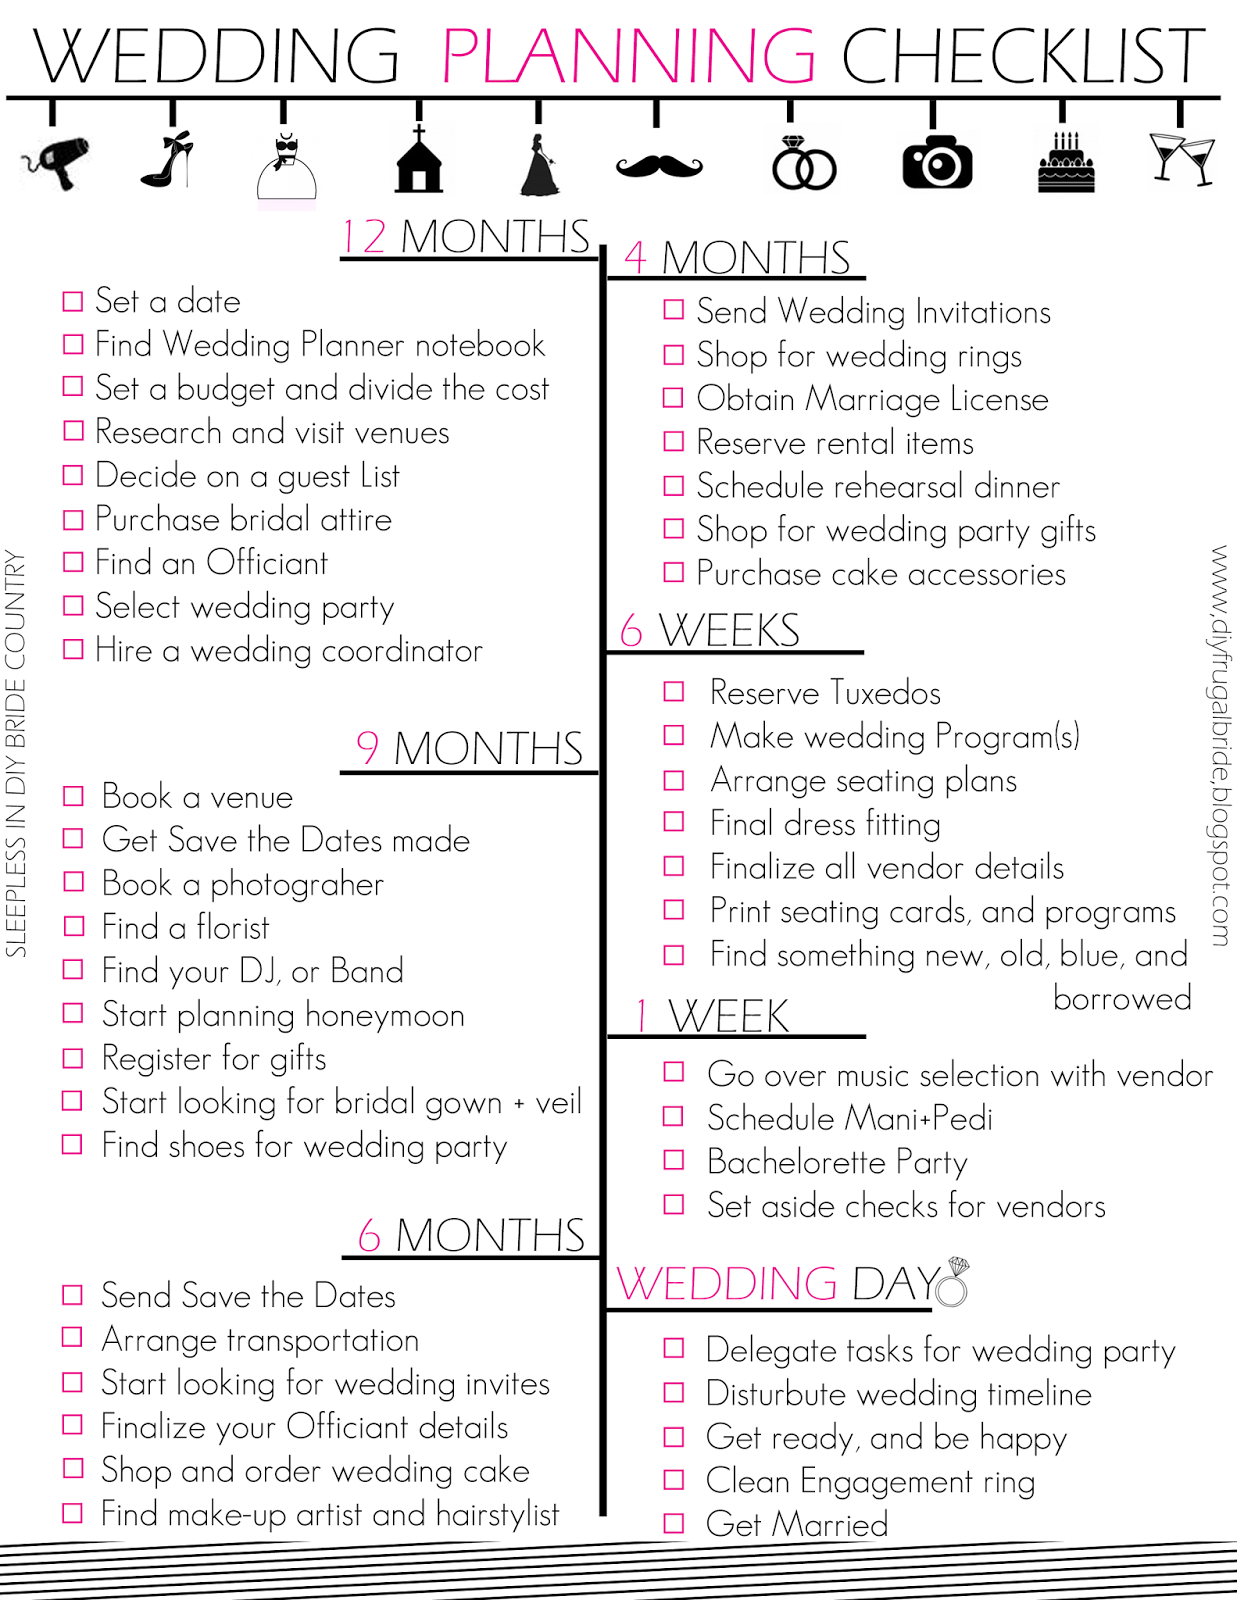 budget bride wedding checklist and budget tips pinterest